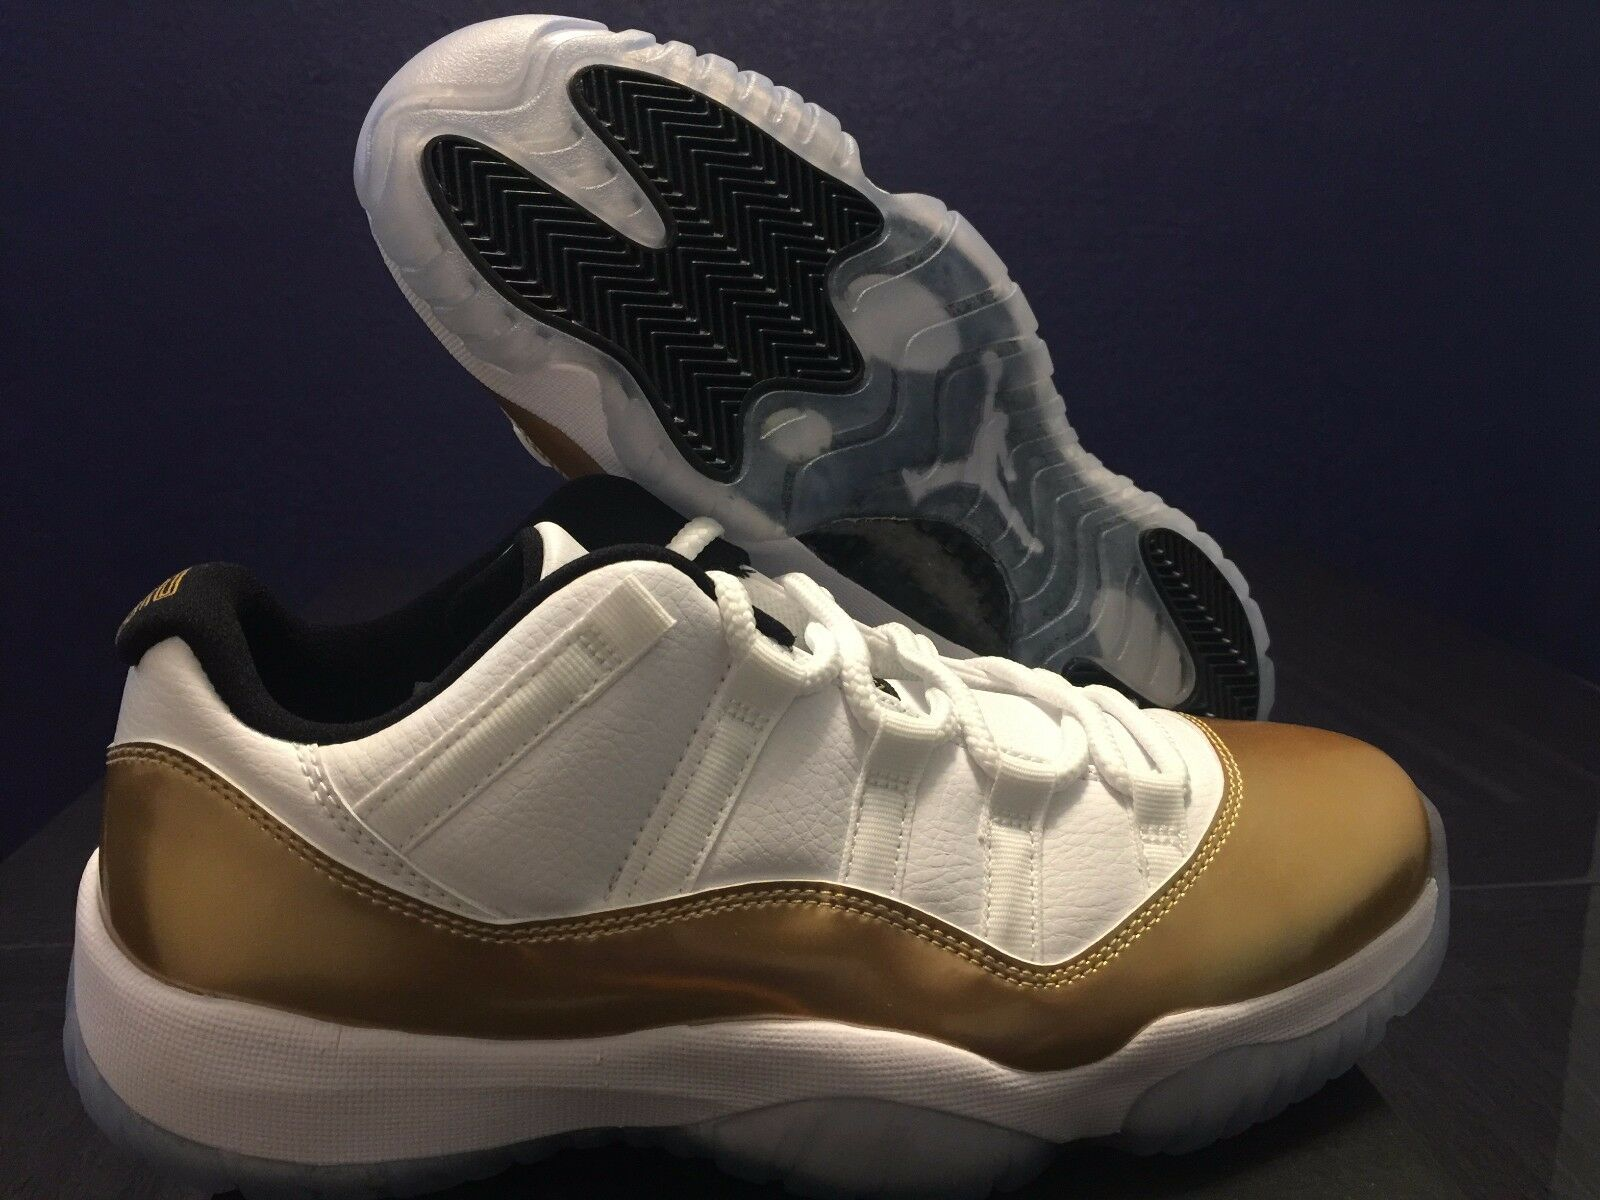 BRAND NEW 2018 Nike Air Jordan 11 Retro Low Closing Ceremony SIZE 8.5 GOLDEN AIR Cheap women's shoes women's shoes